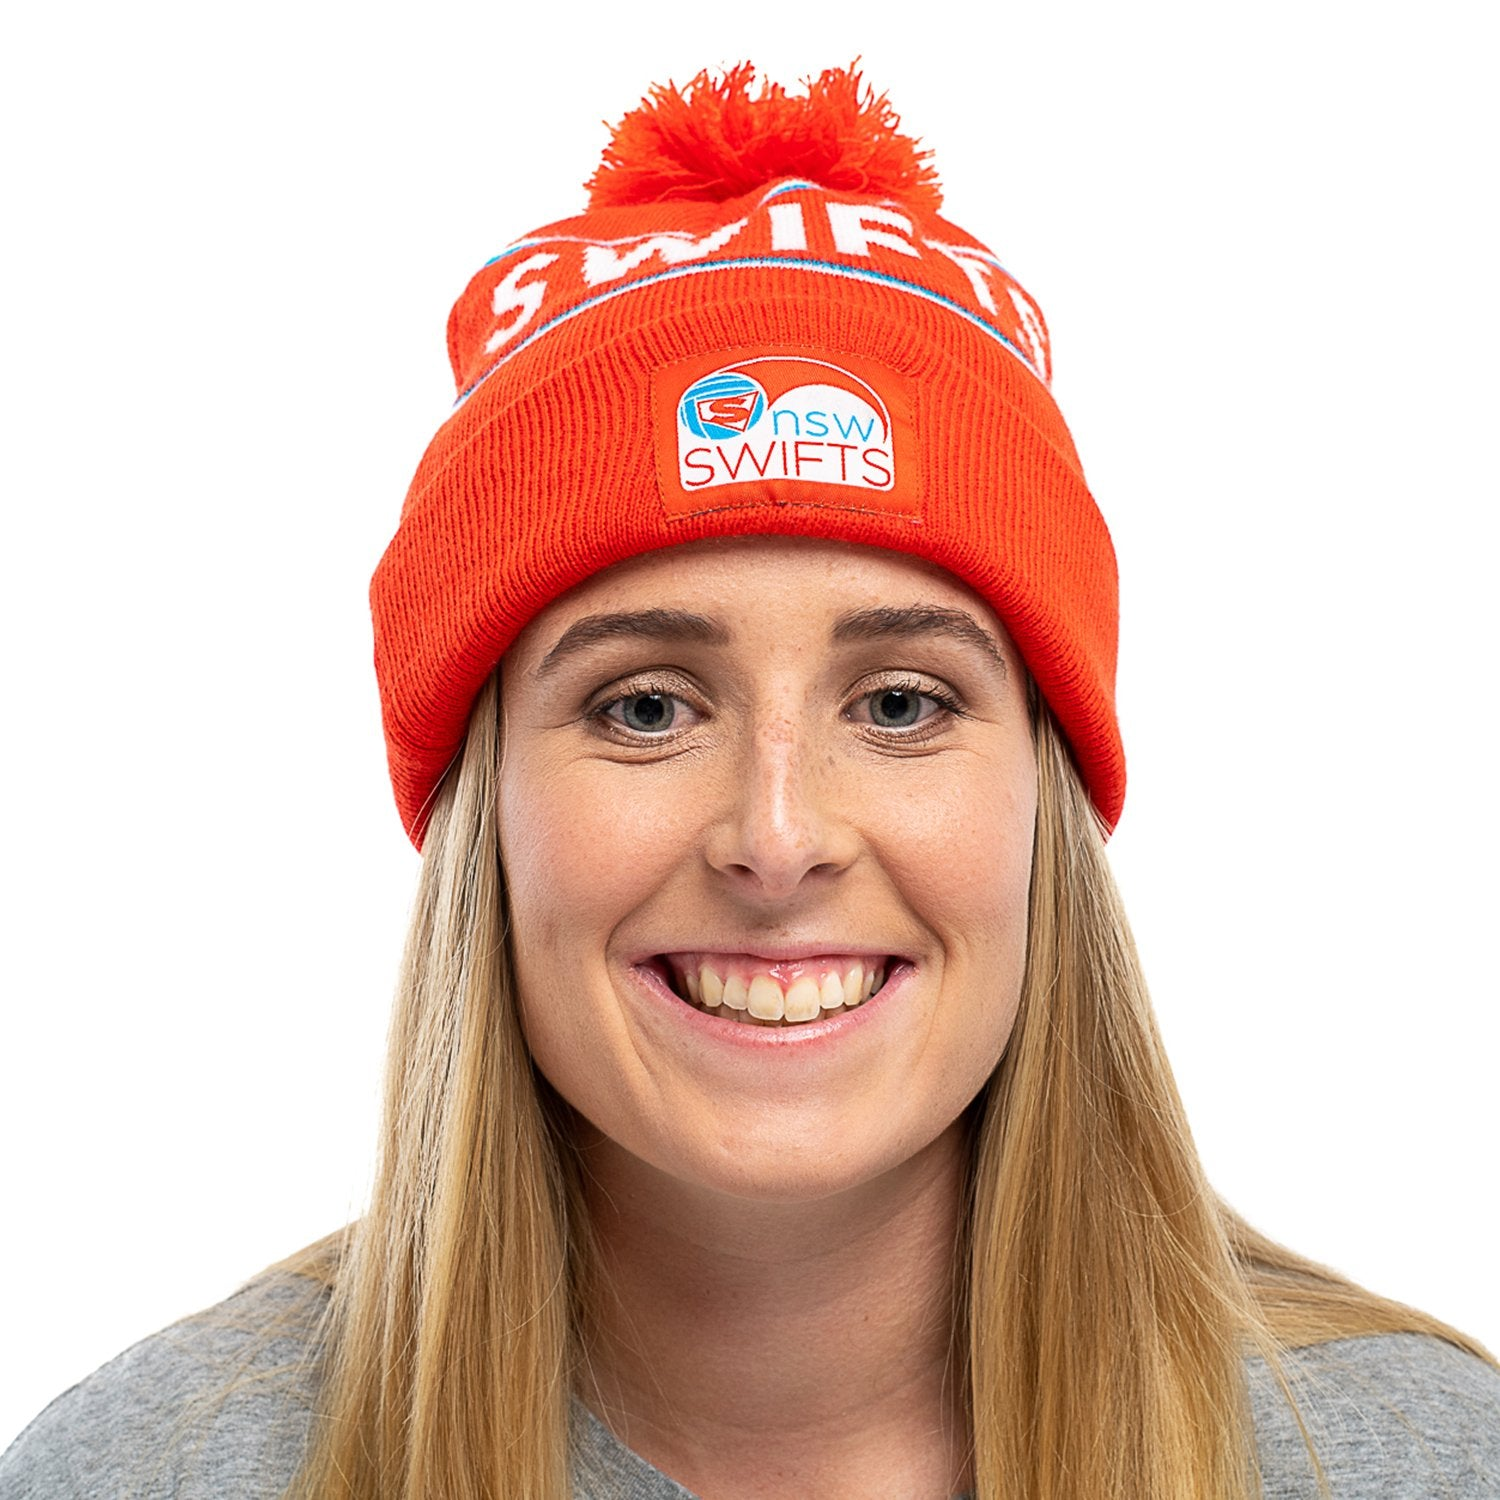 NSW Swifts Beanie